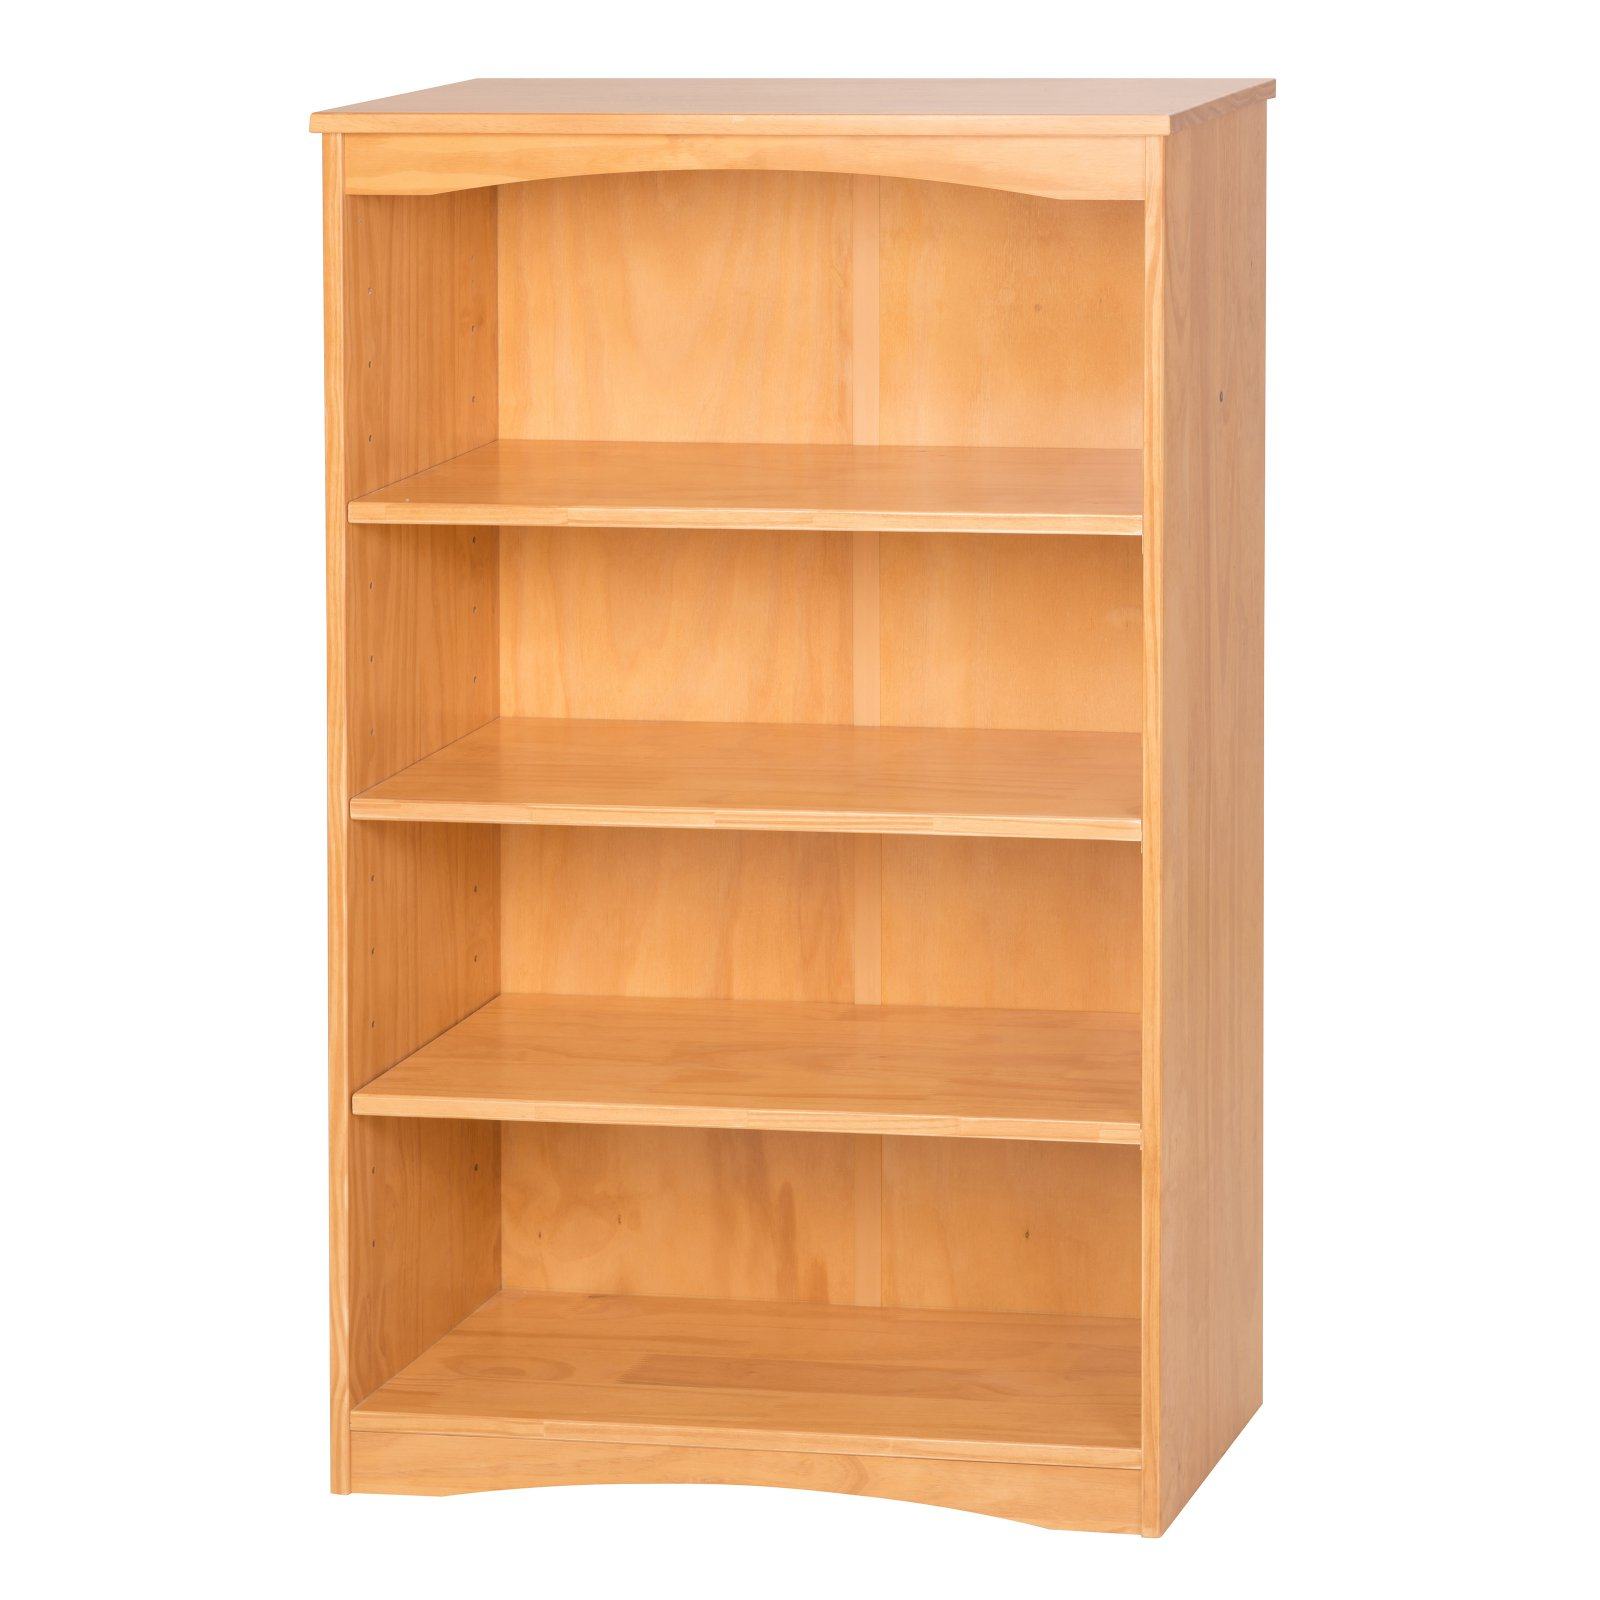 "Essentials Wooden Bookcase 48"" High - Multiple Finishes"